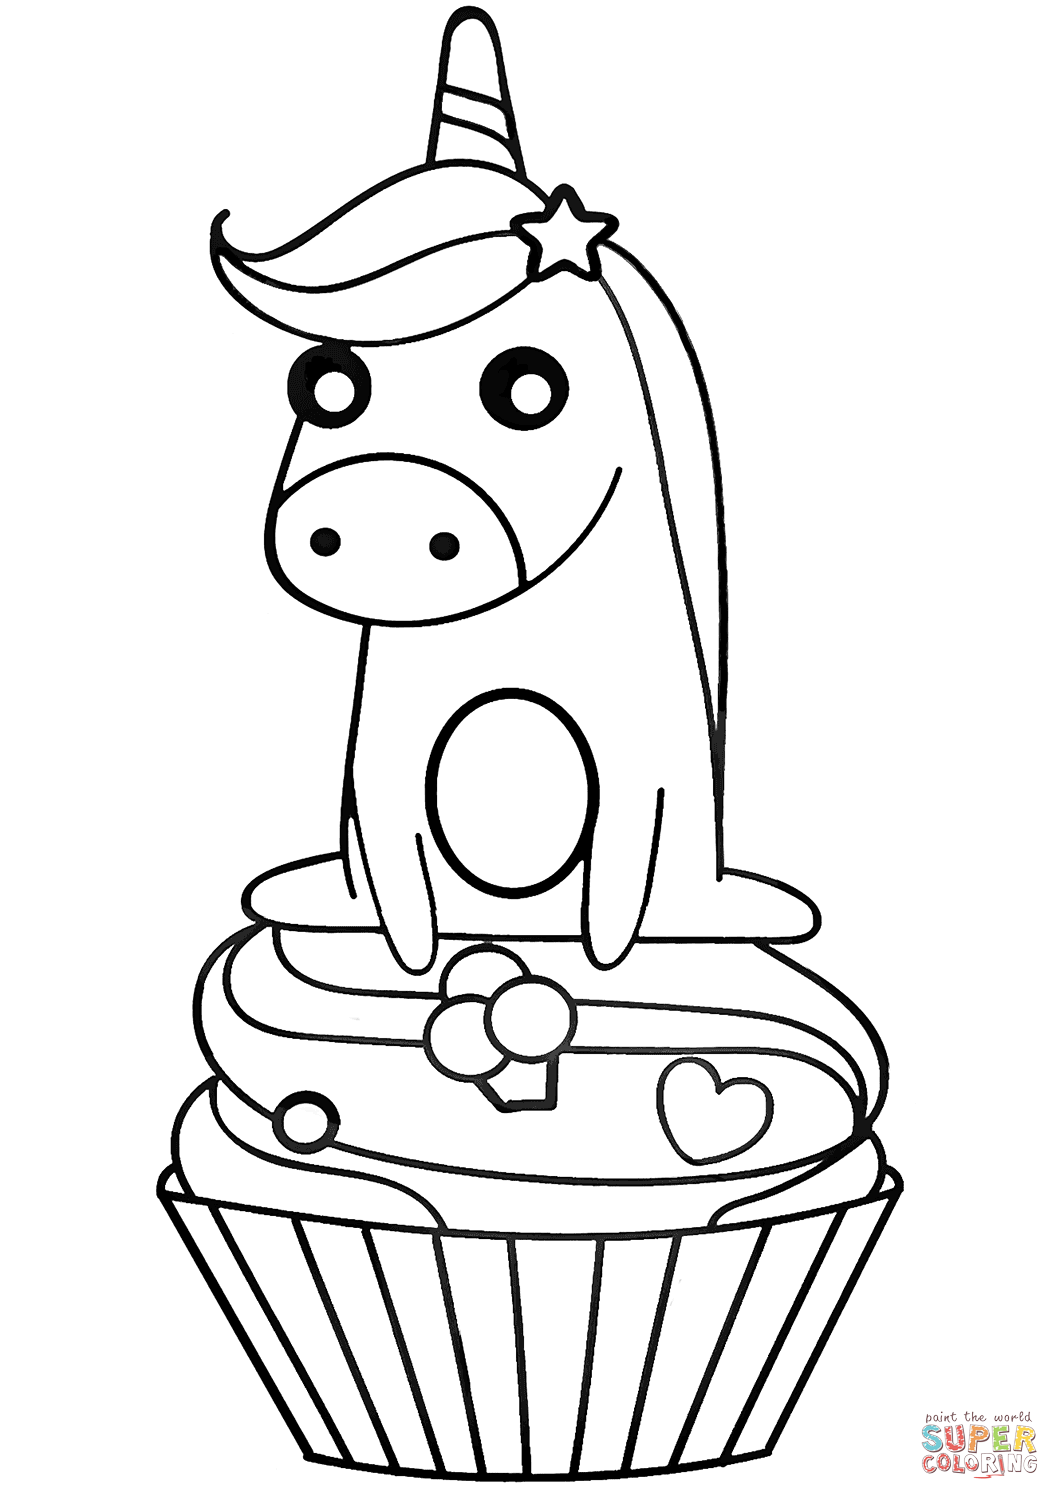 Unicorn On Cupcake Super Coloring Coloring Pages For Cupcake Coloring Pages Teddy Bear Coloring Pages Unicorn Coloring Pages